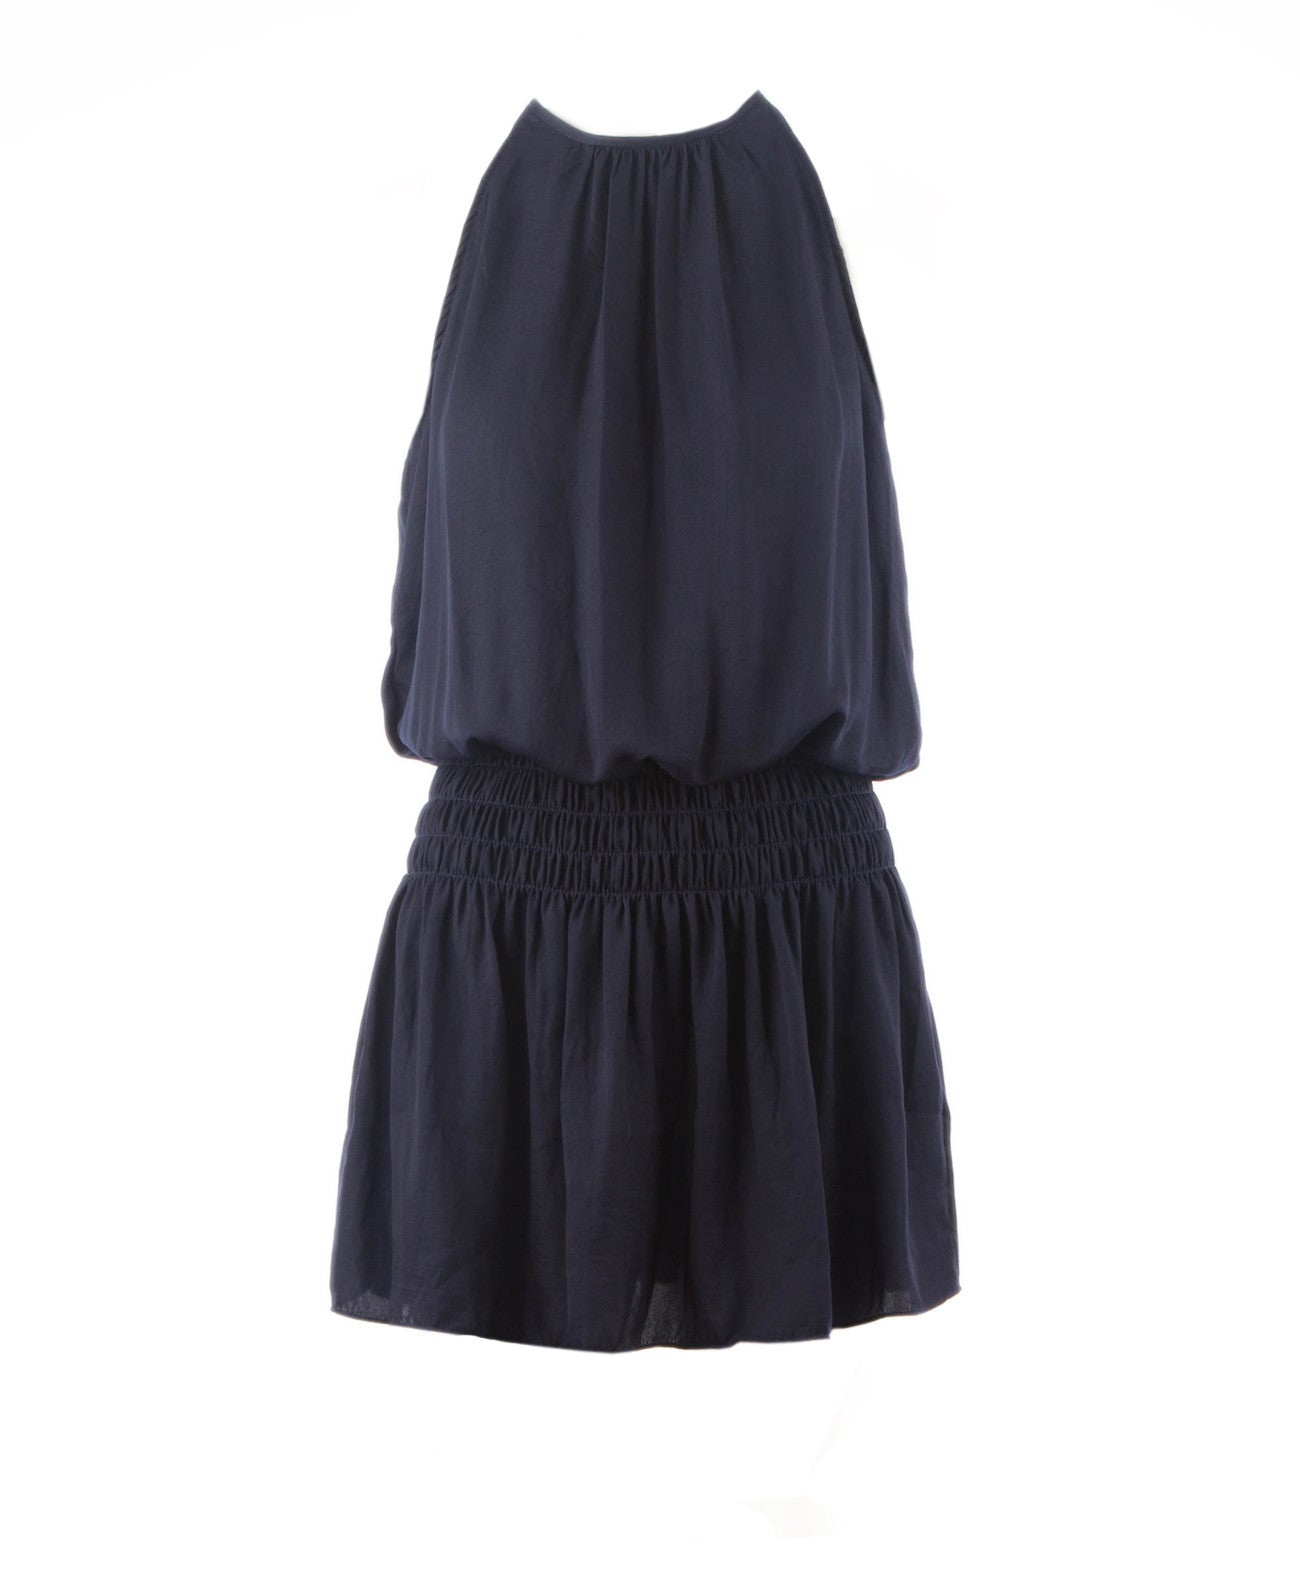 Mia-Navy Halter Neck Smocked Waist Dress